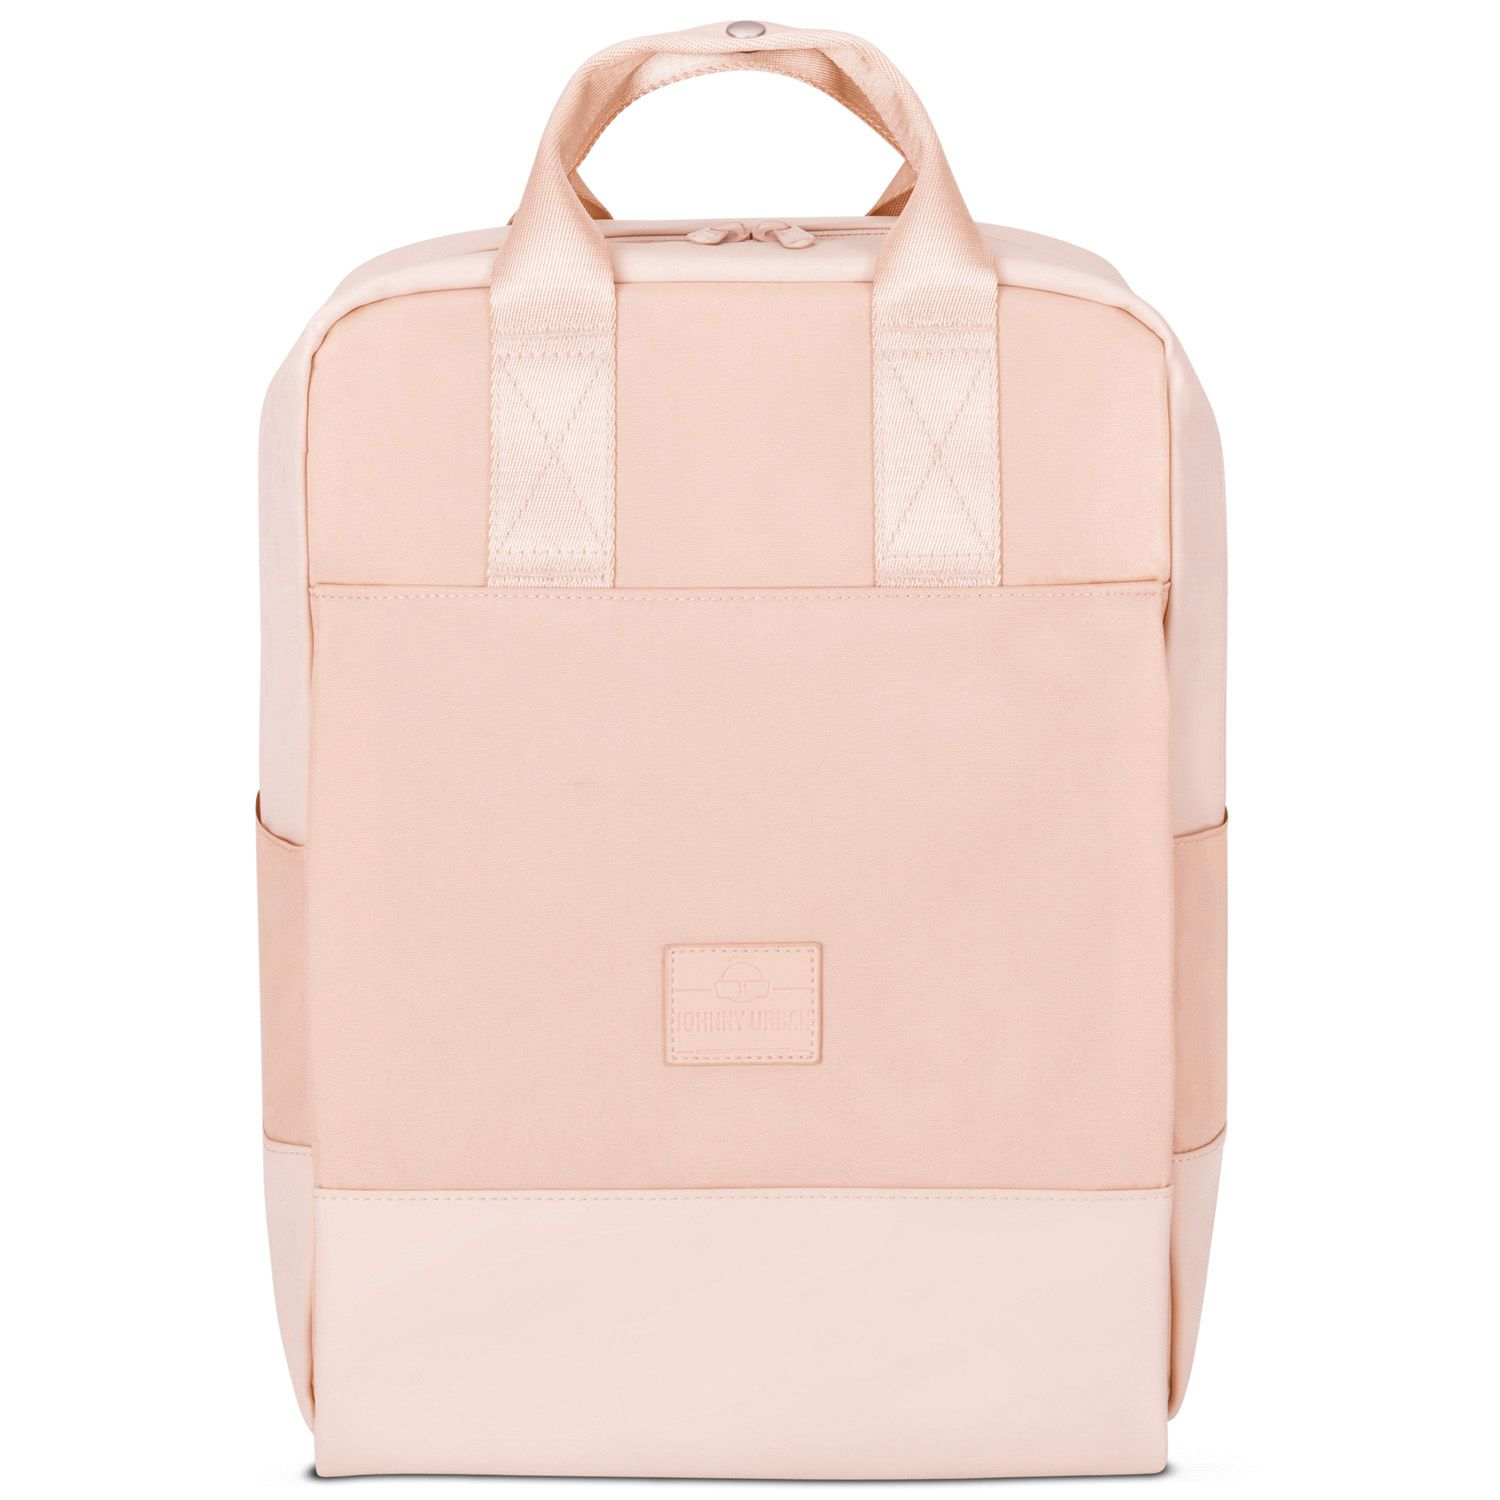 Rucksack - Jona  - rosa - Johnny Urban